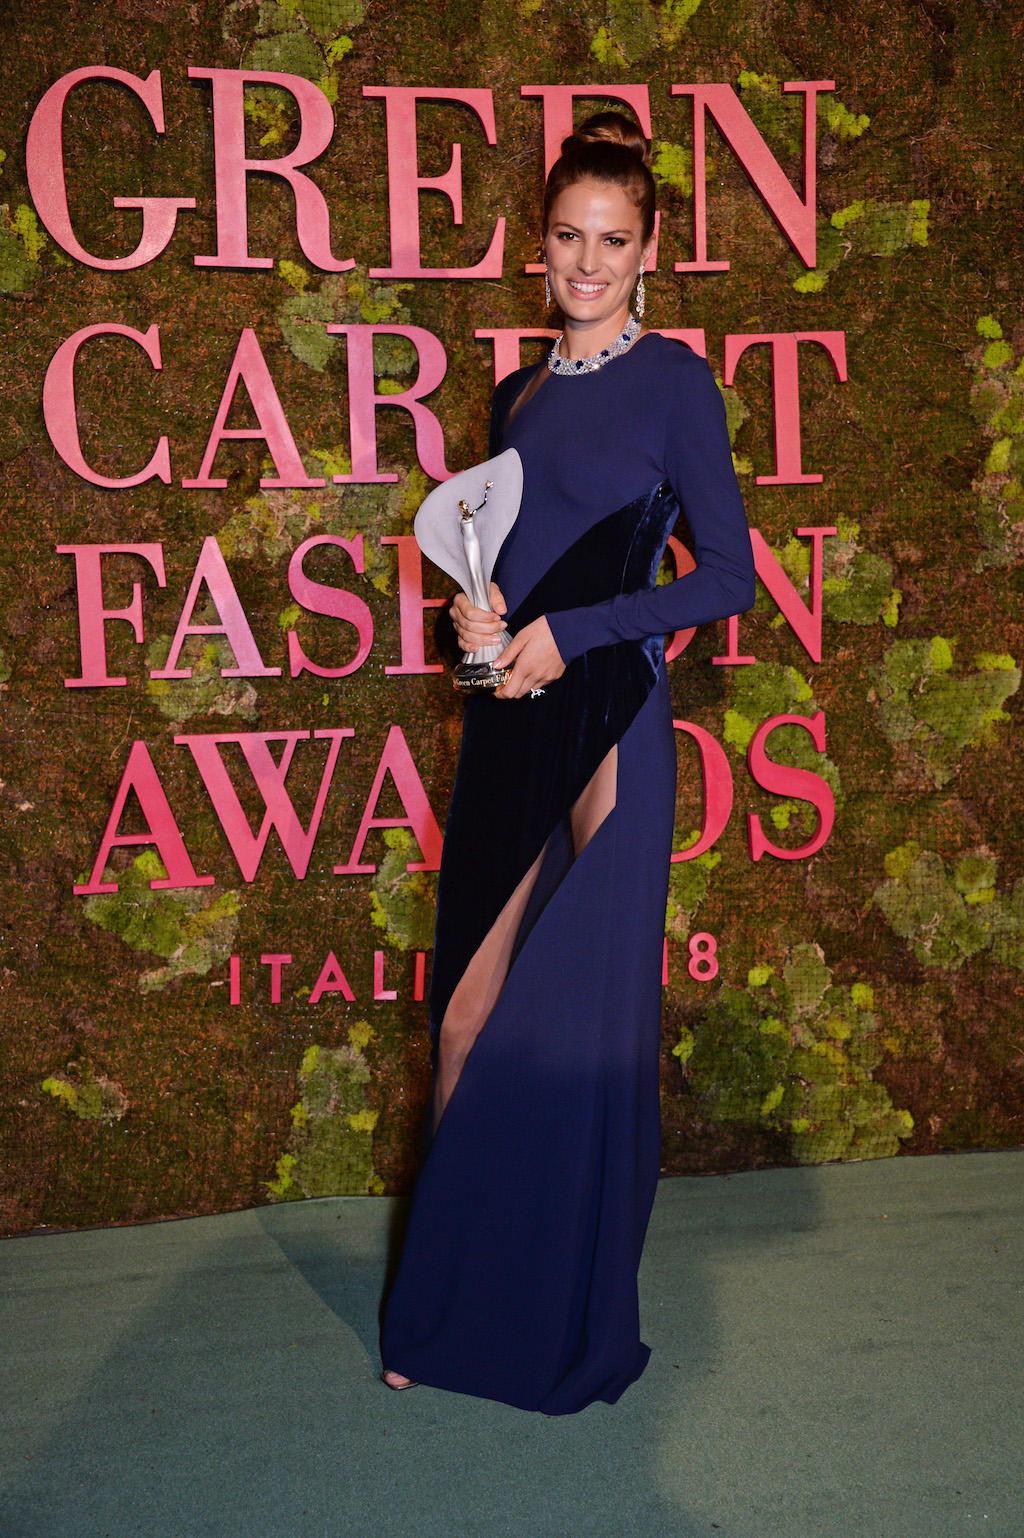 Green Carpet Fashion Awards 2018 - Cameron Russel - Hair and Make Up by Massimo Serini